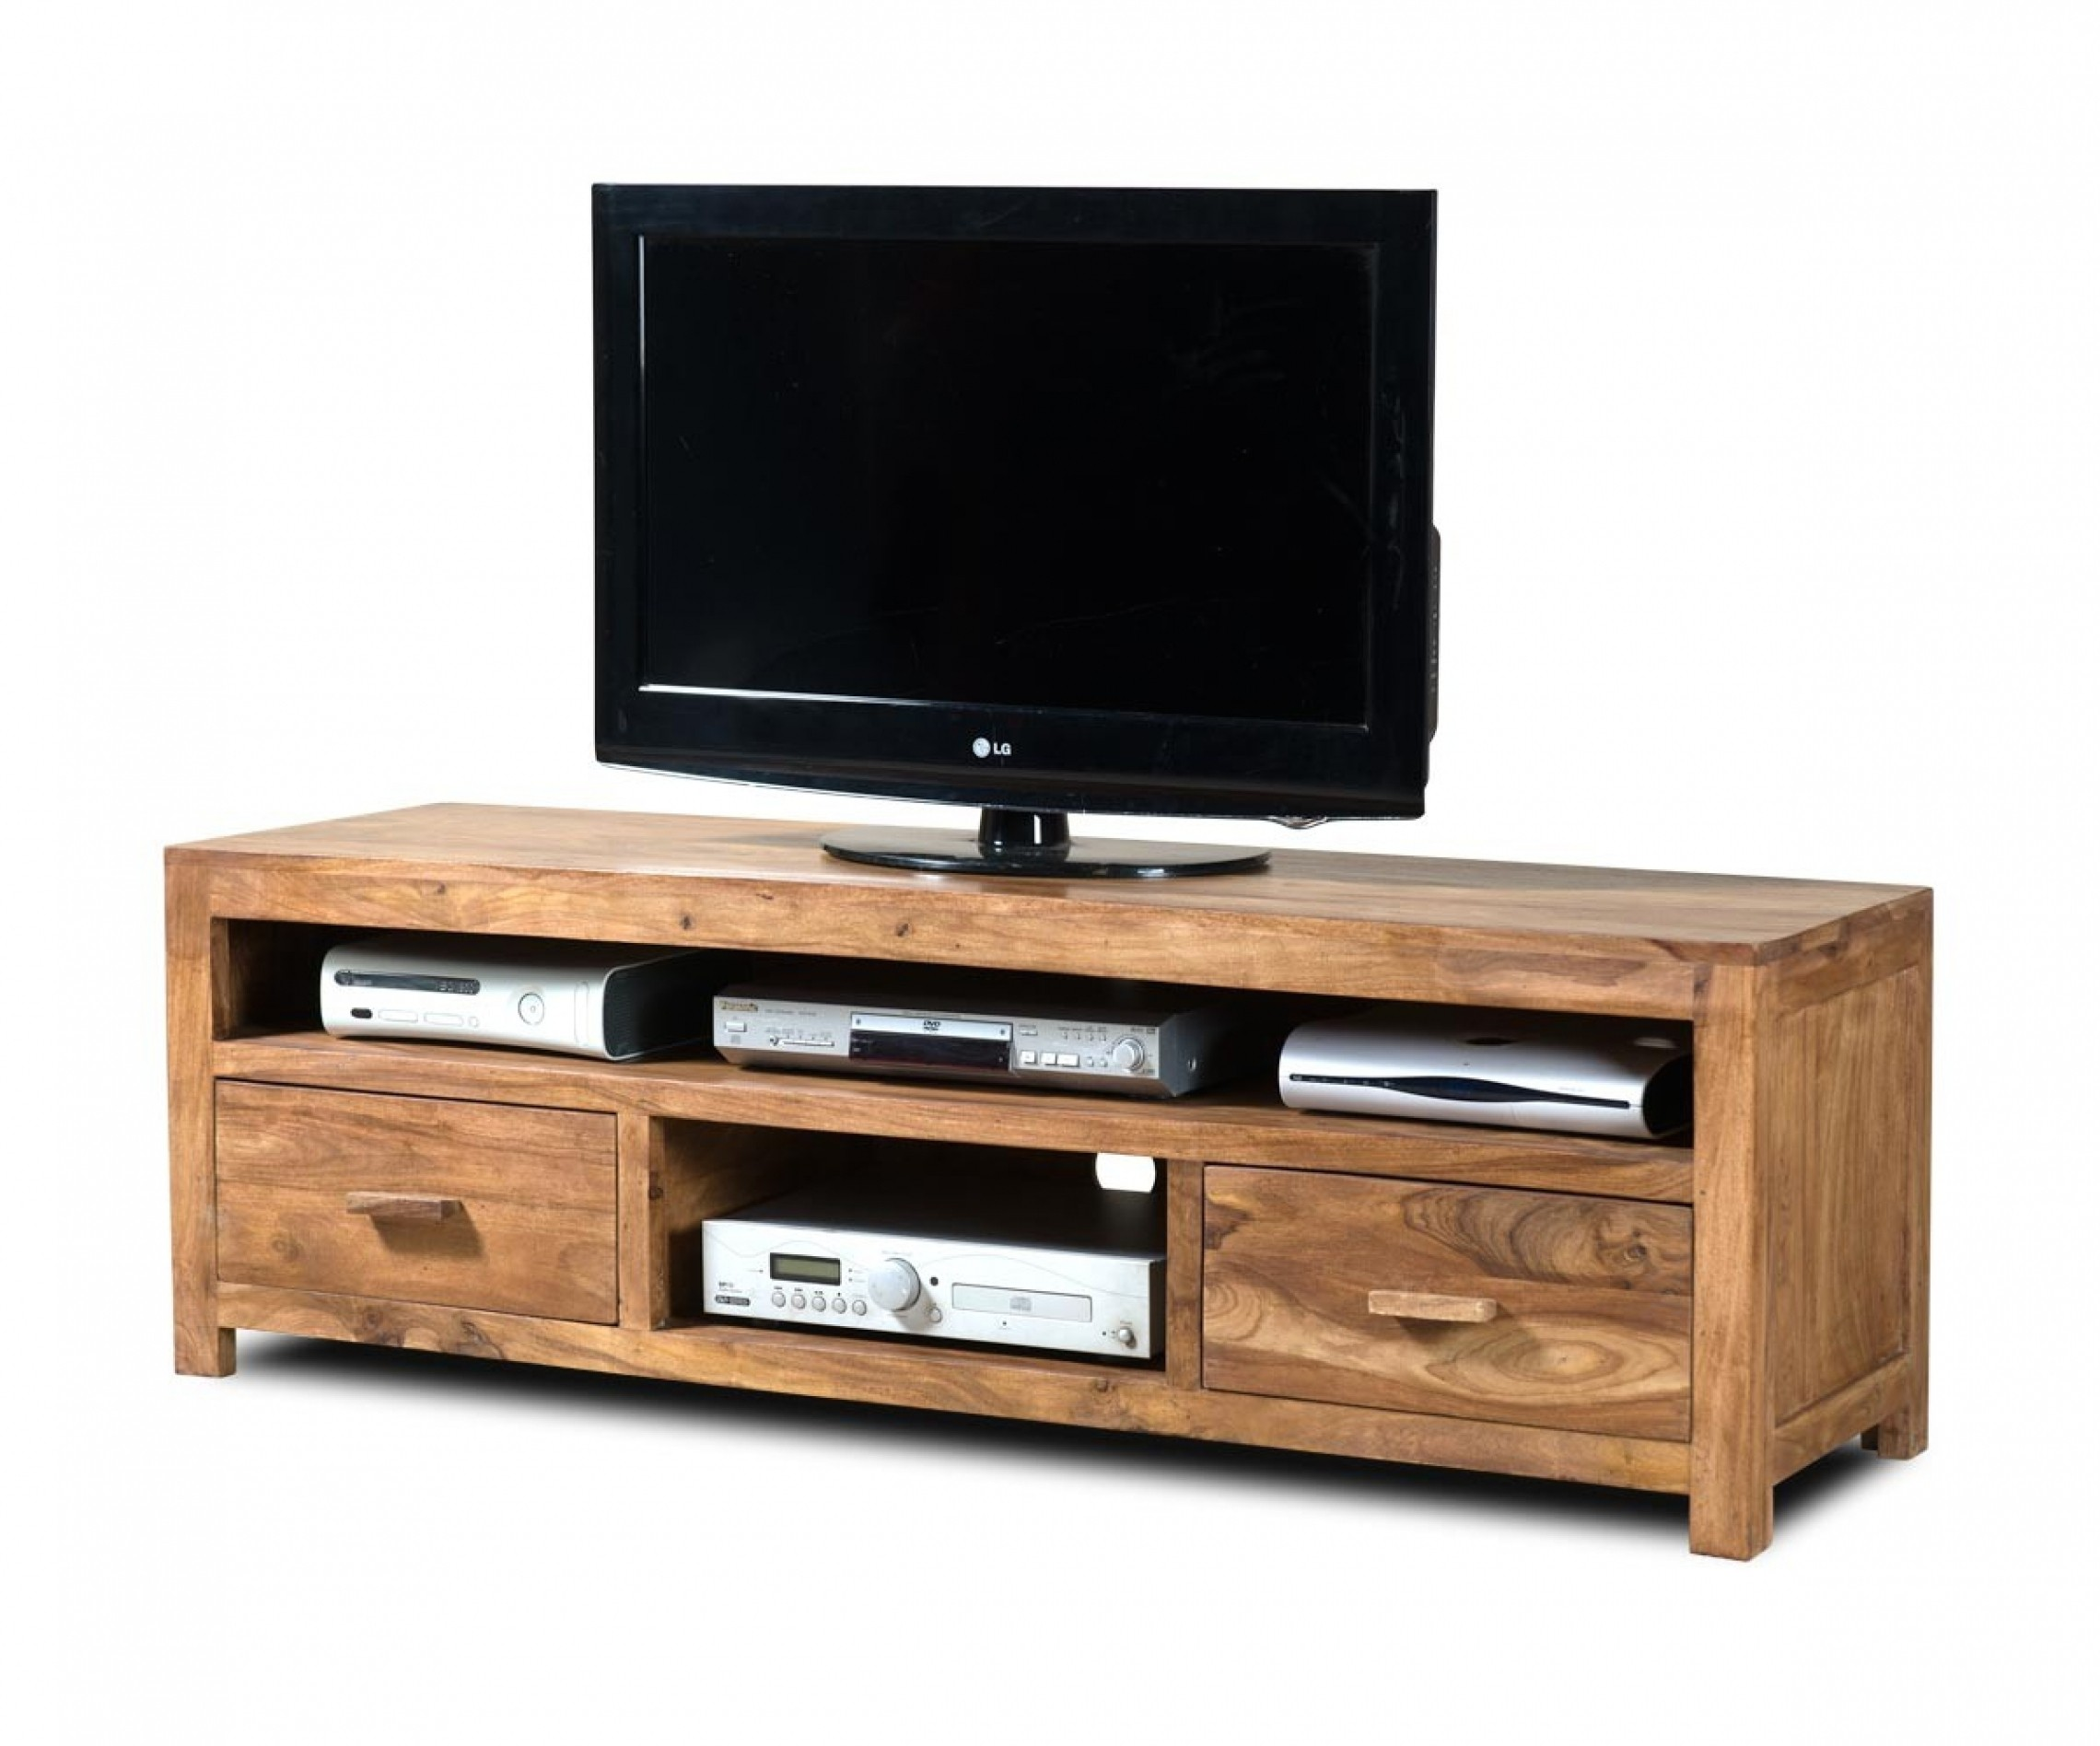 Ordinaire With Its Solid Wood Craftsmanship, This Natural Finished TV Cabinet Is Very  Durable And Stable. It Offers A Large Top For Accommodating Even Larger  Flat ...